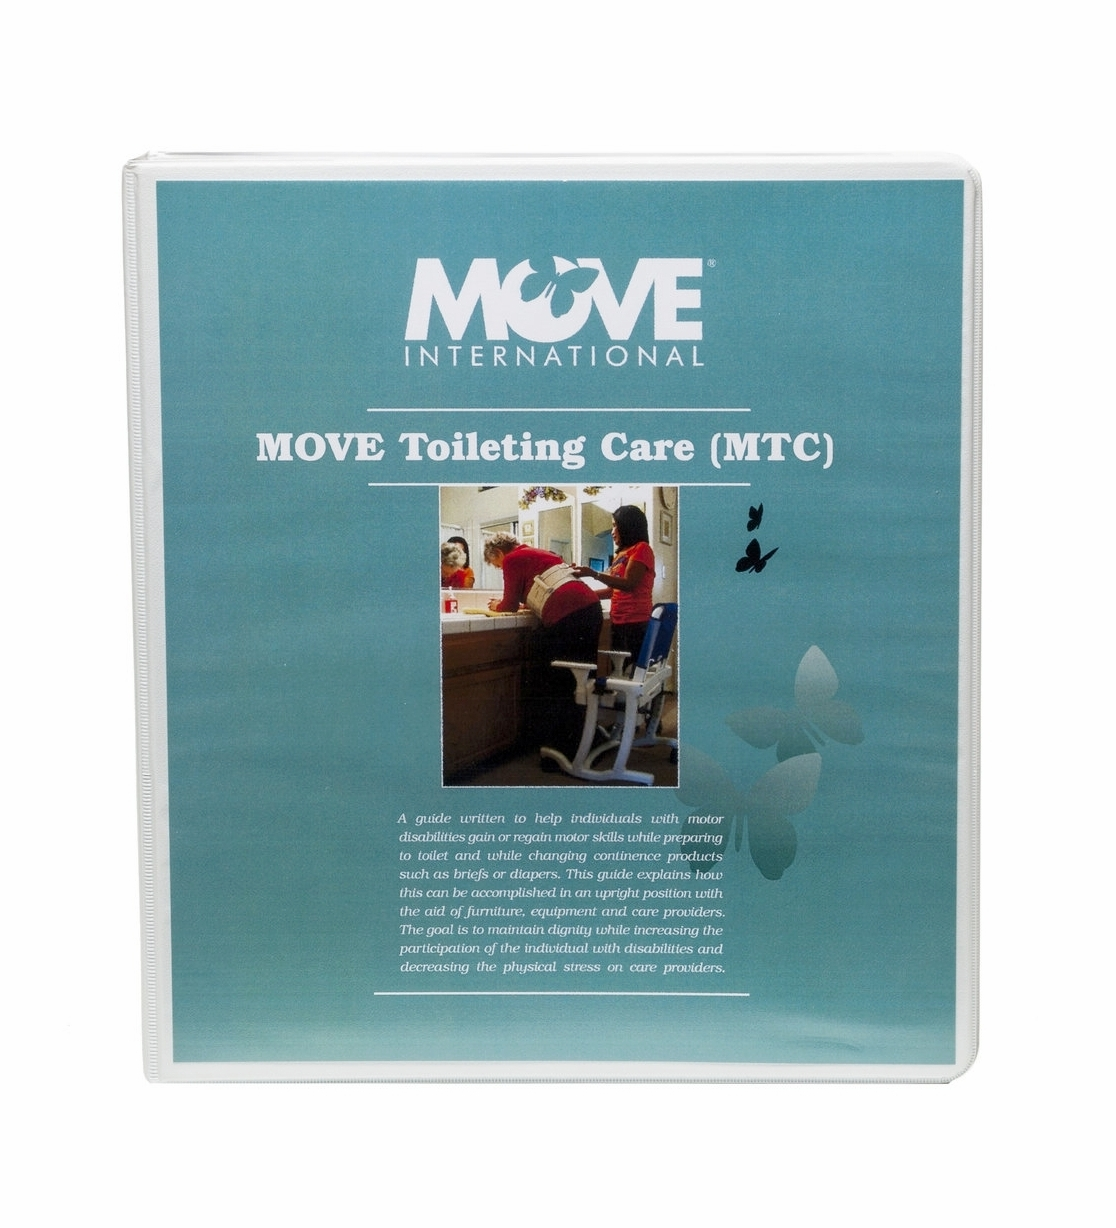 MOVE Toileting Care (MTC)    $50.00   MTC (MOVE Toileting Care) is a program that teaches upright toileting in the home, residential facility, care facility or public restrooms. It is a process that gives dignity to a daily routine regardless of age or disability.  Upright toileting can be done with the use of household furniture, bathroom vanity, grab bars or the RIfton Support Station.  This manual is written for residential/care facilities.